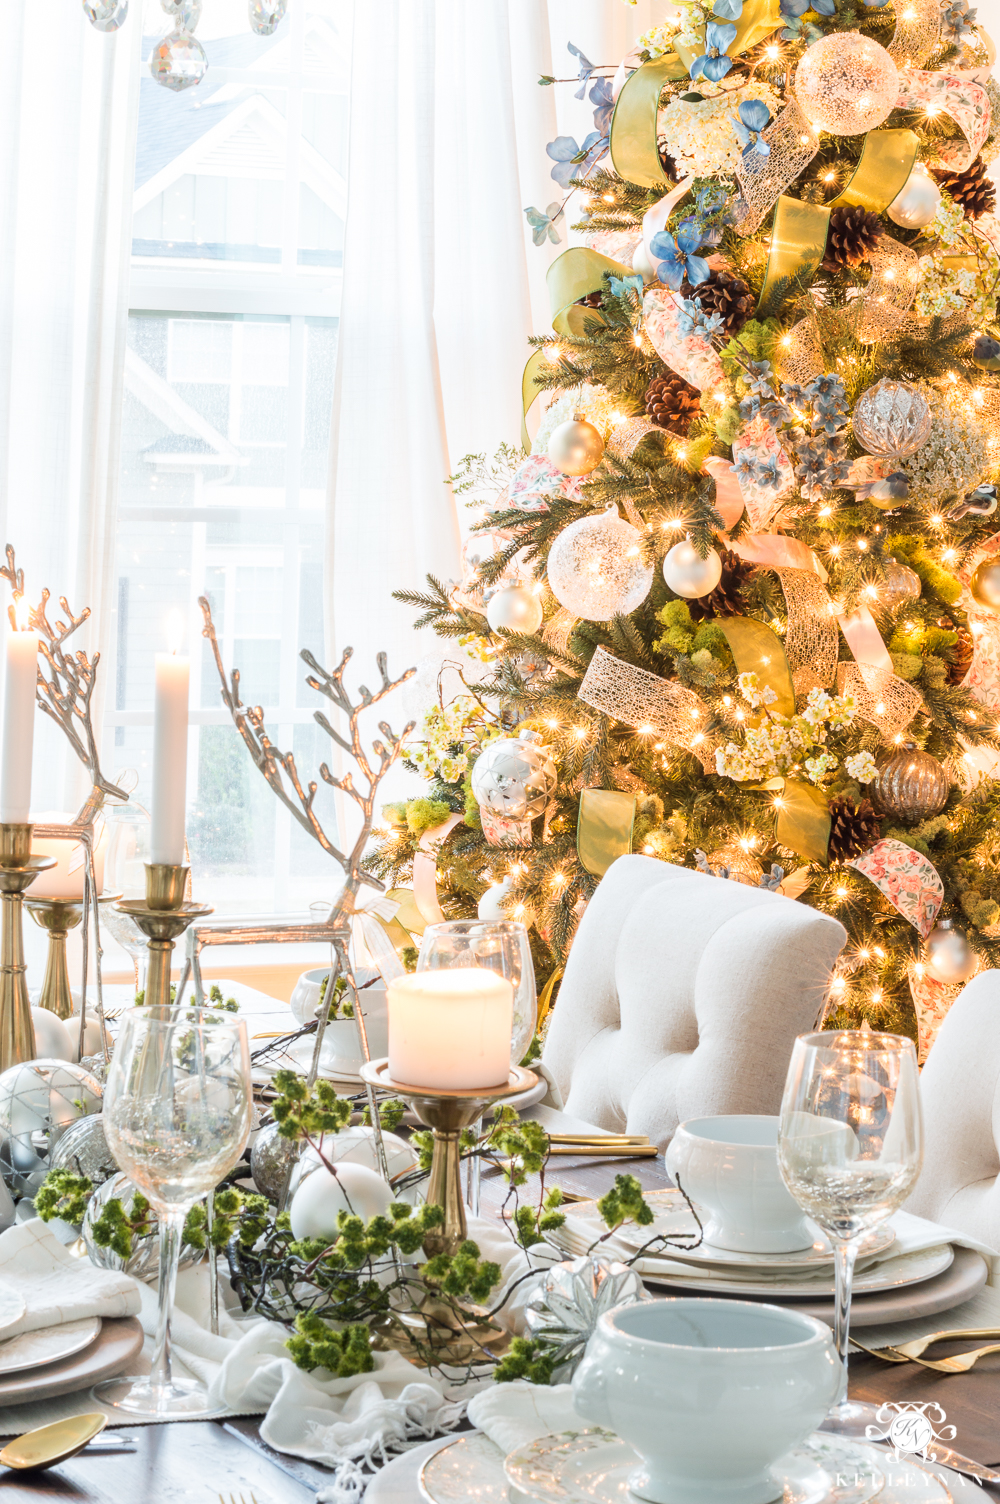 Dining room Christmas decorating ideas for a dinner party